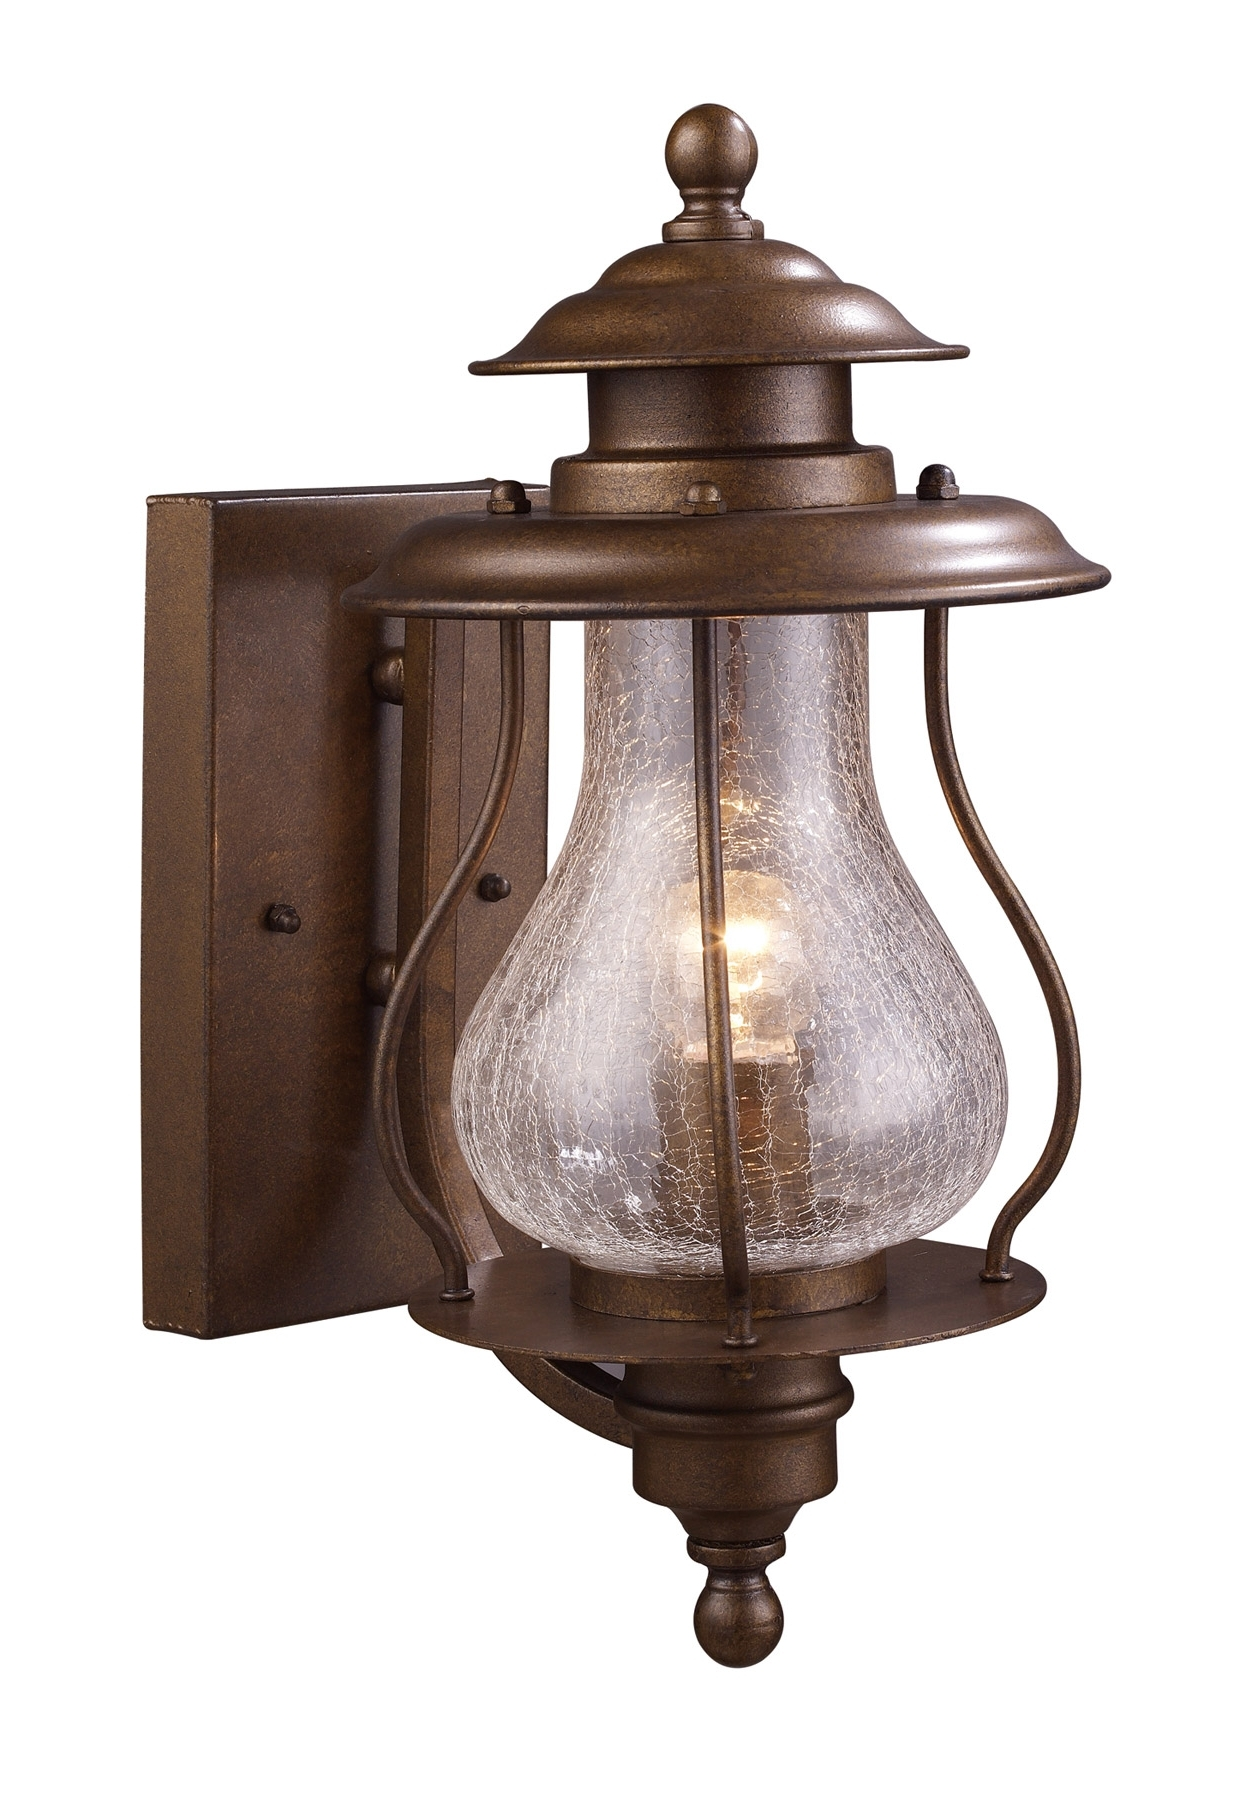 Favorite Outdoor Wall Lighting With Motion Activated Intended For Large Antique Galvanized Outdoor Wall Mounted Sconce Lighting With (View 5 of 20)